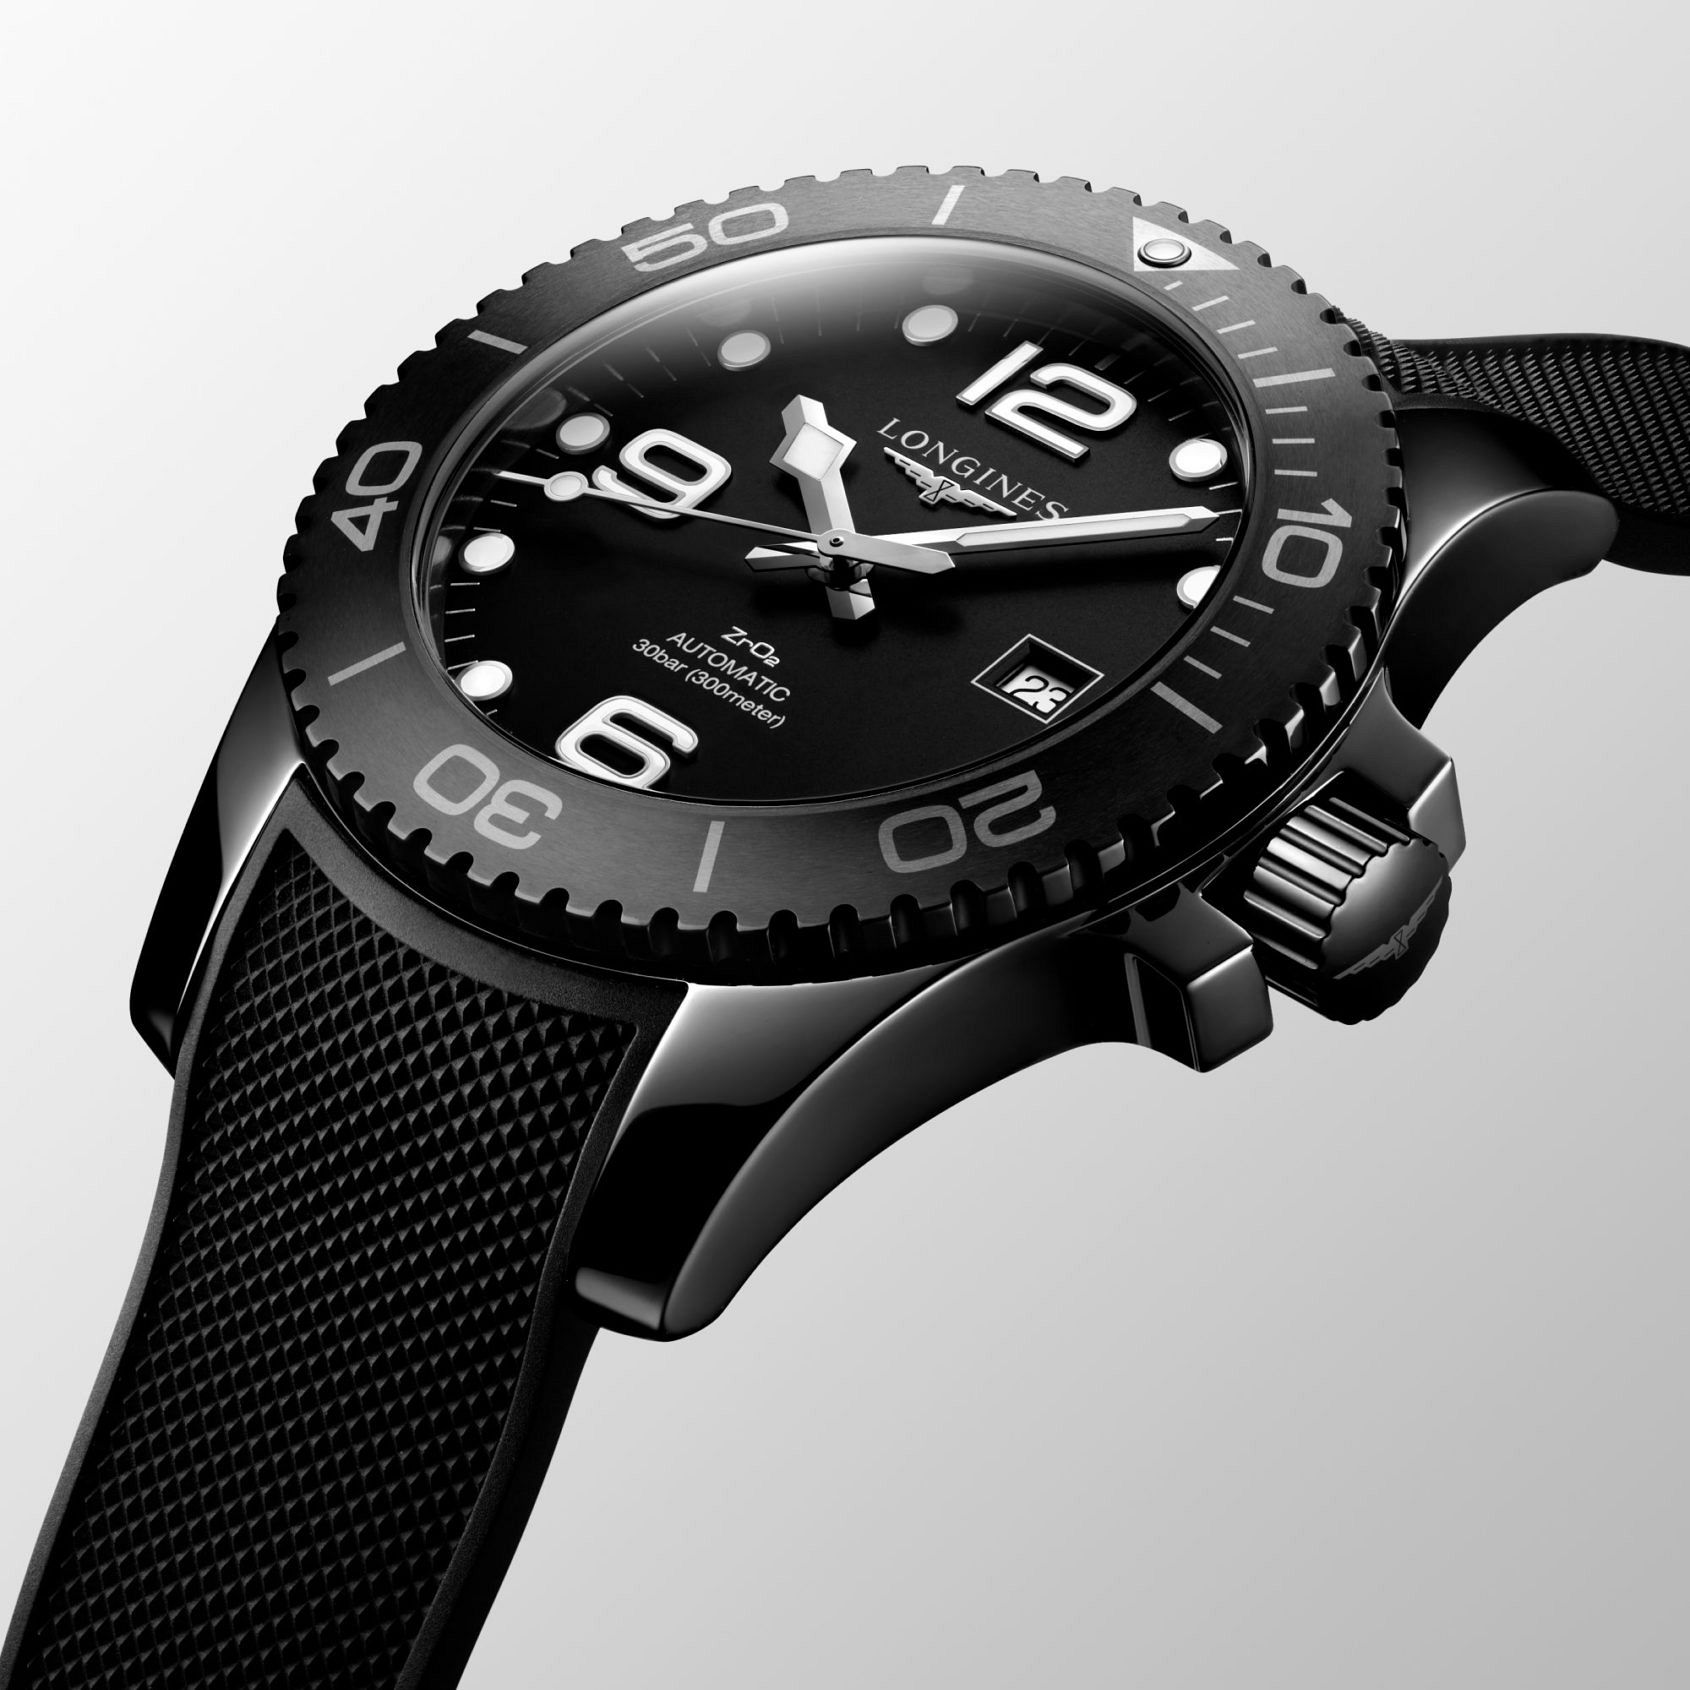 Watches By Material: six great ceramic watches that are super-tough and super-cool